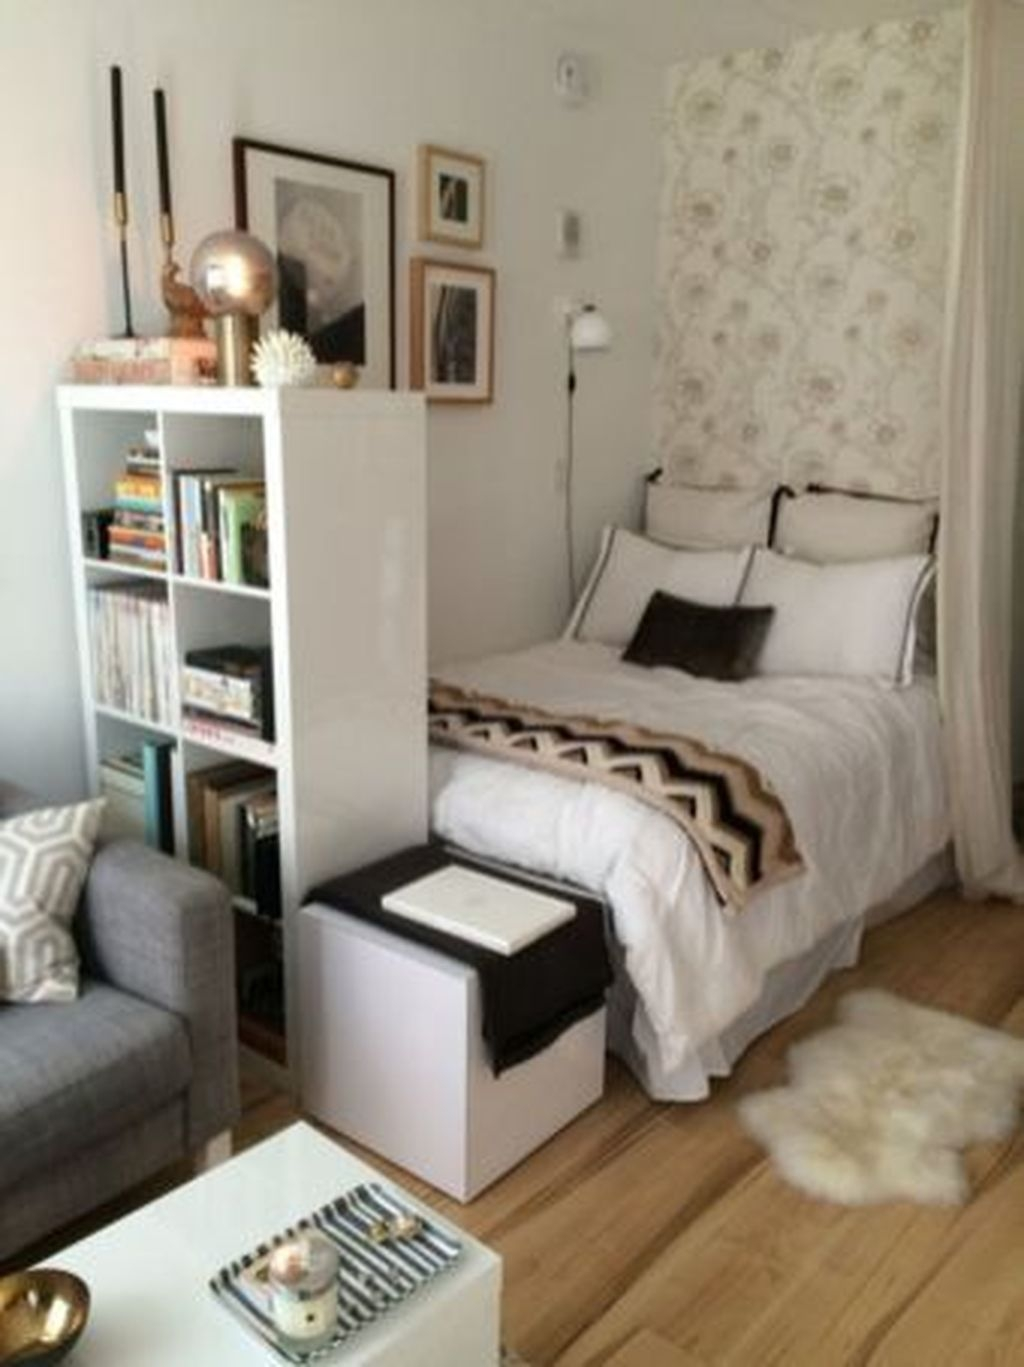 Easy Diy College Apartment Decorating Ideas On A Budget 13